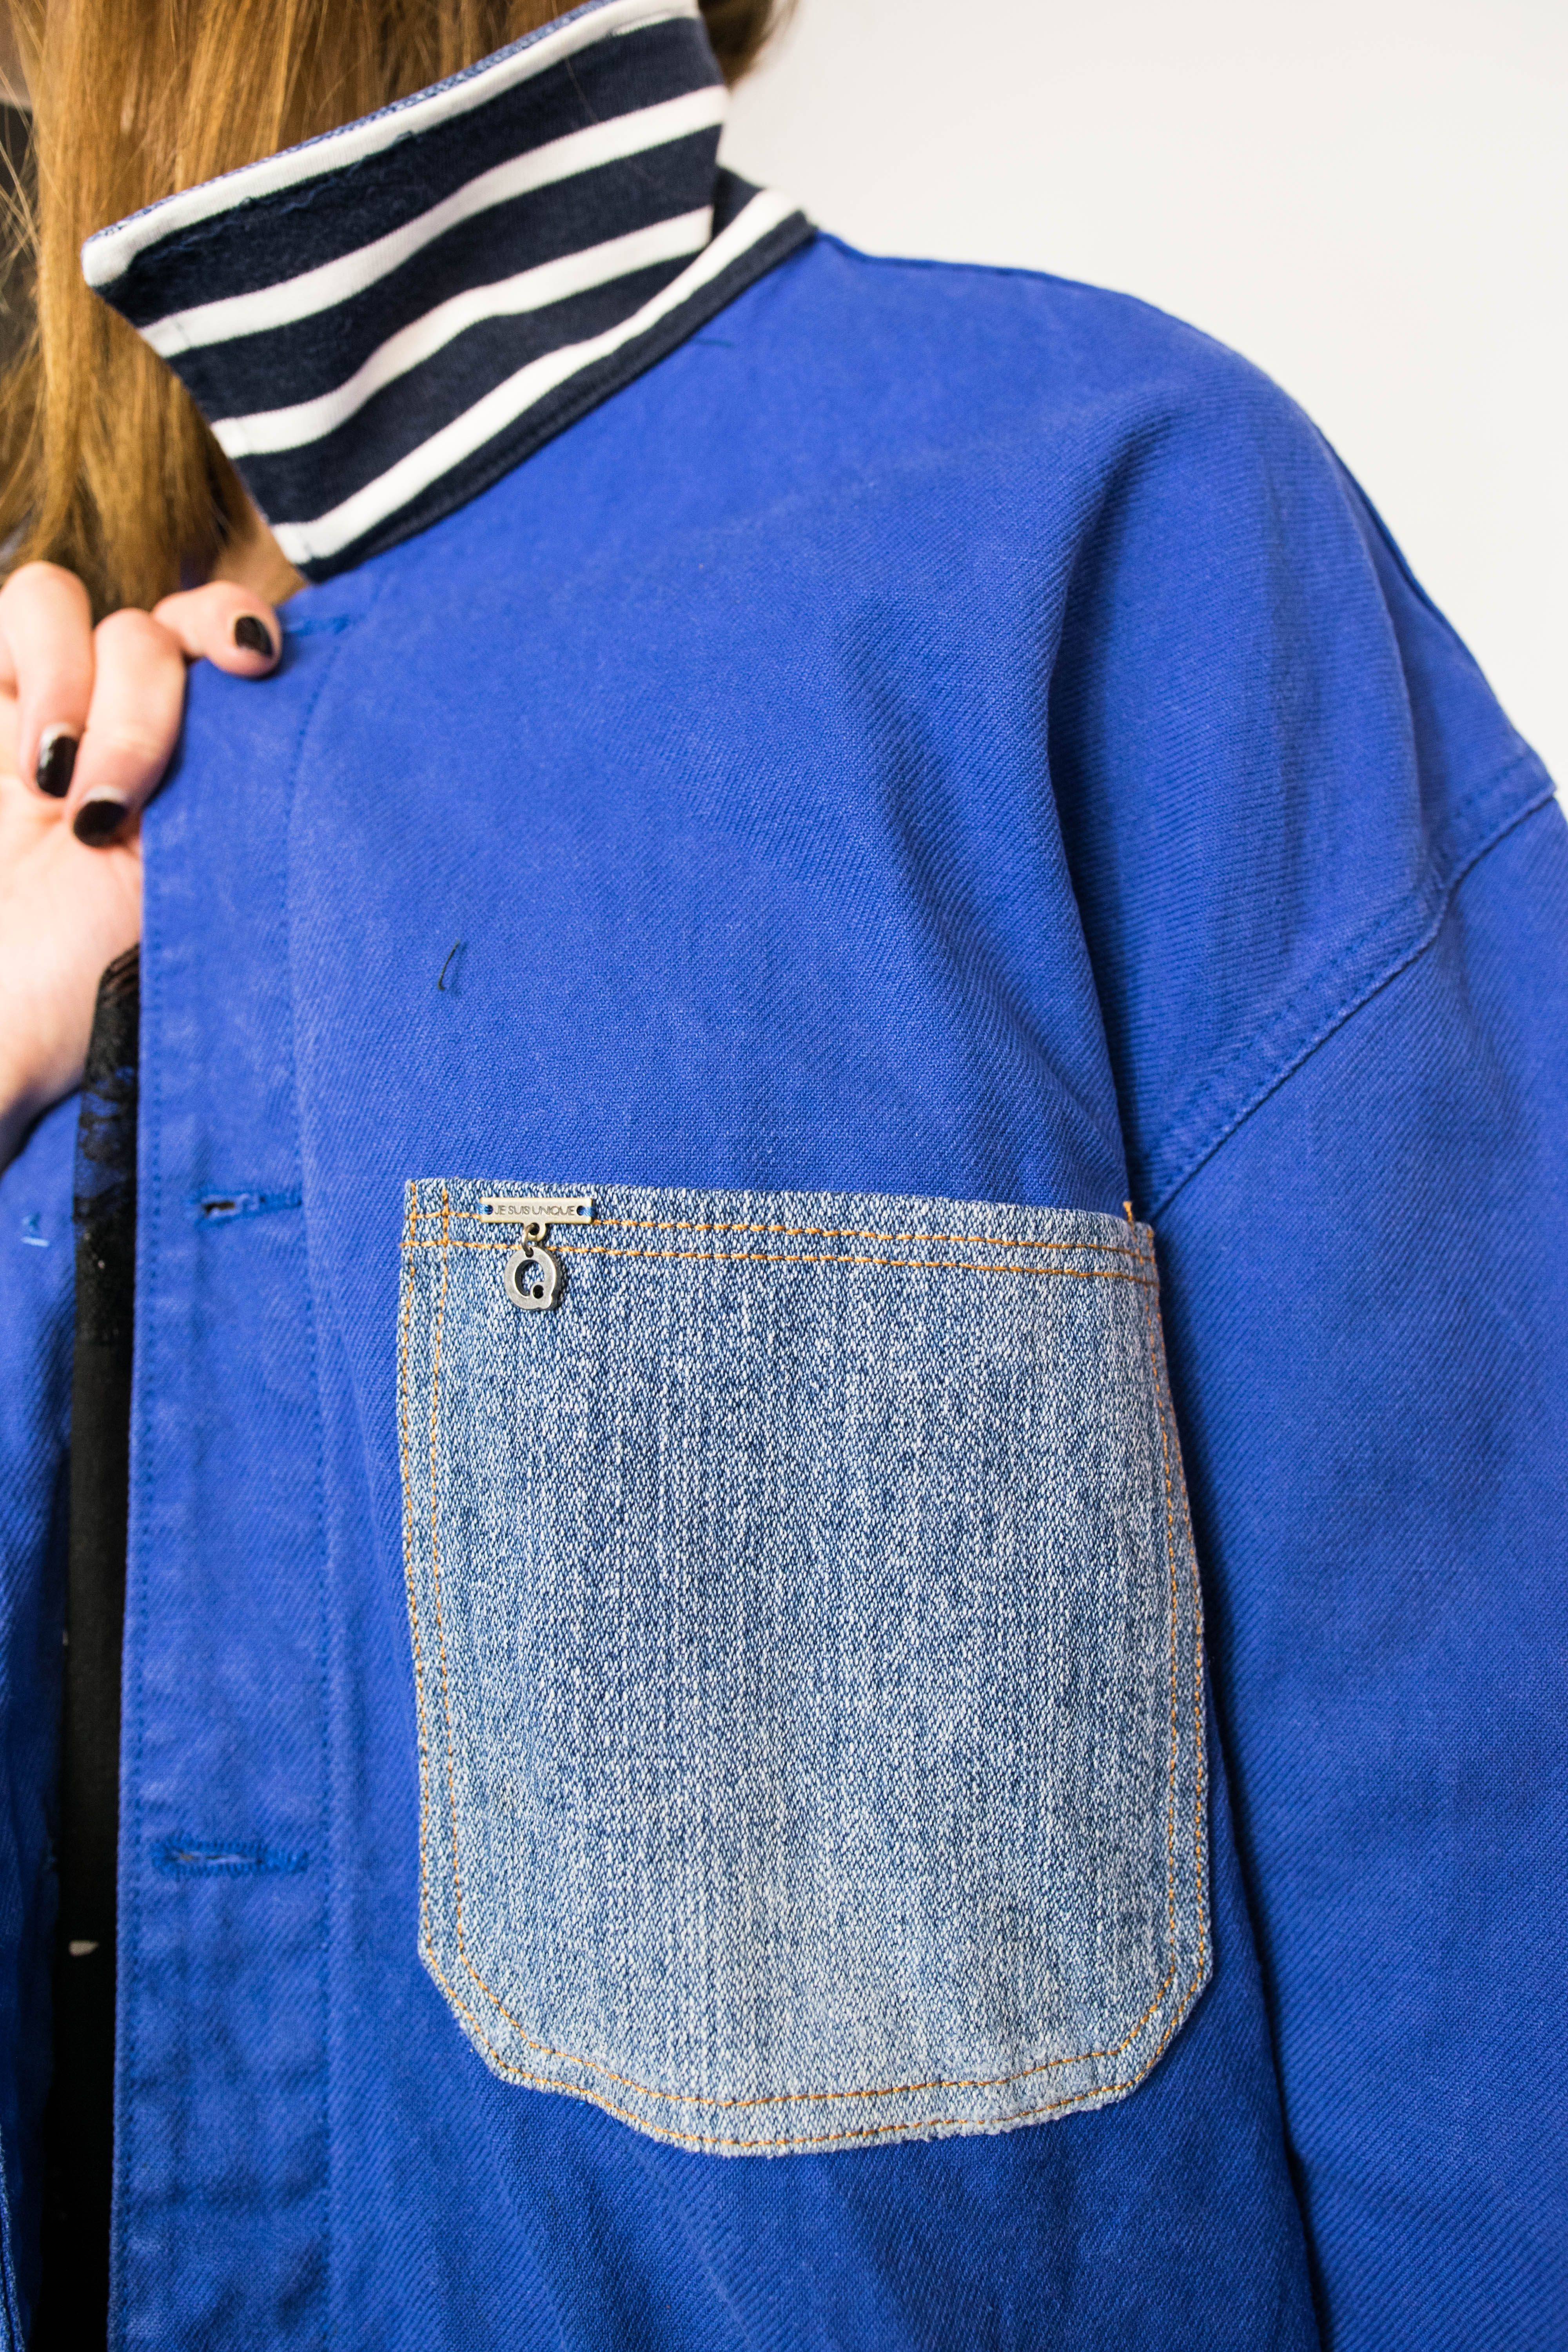 Detail veste workwear chic je suis unique